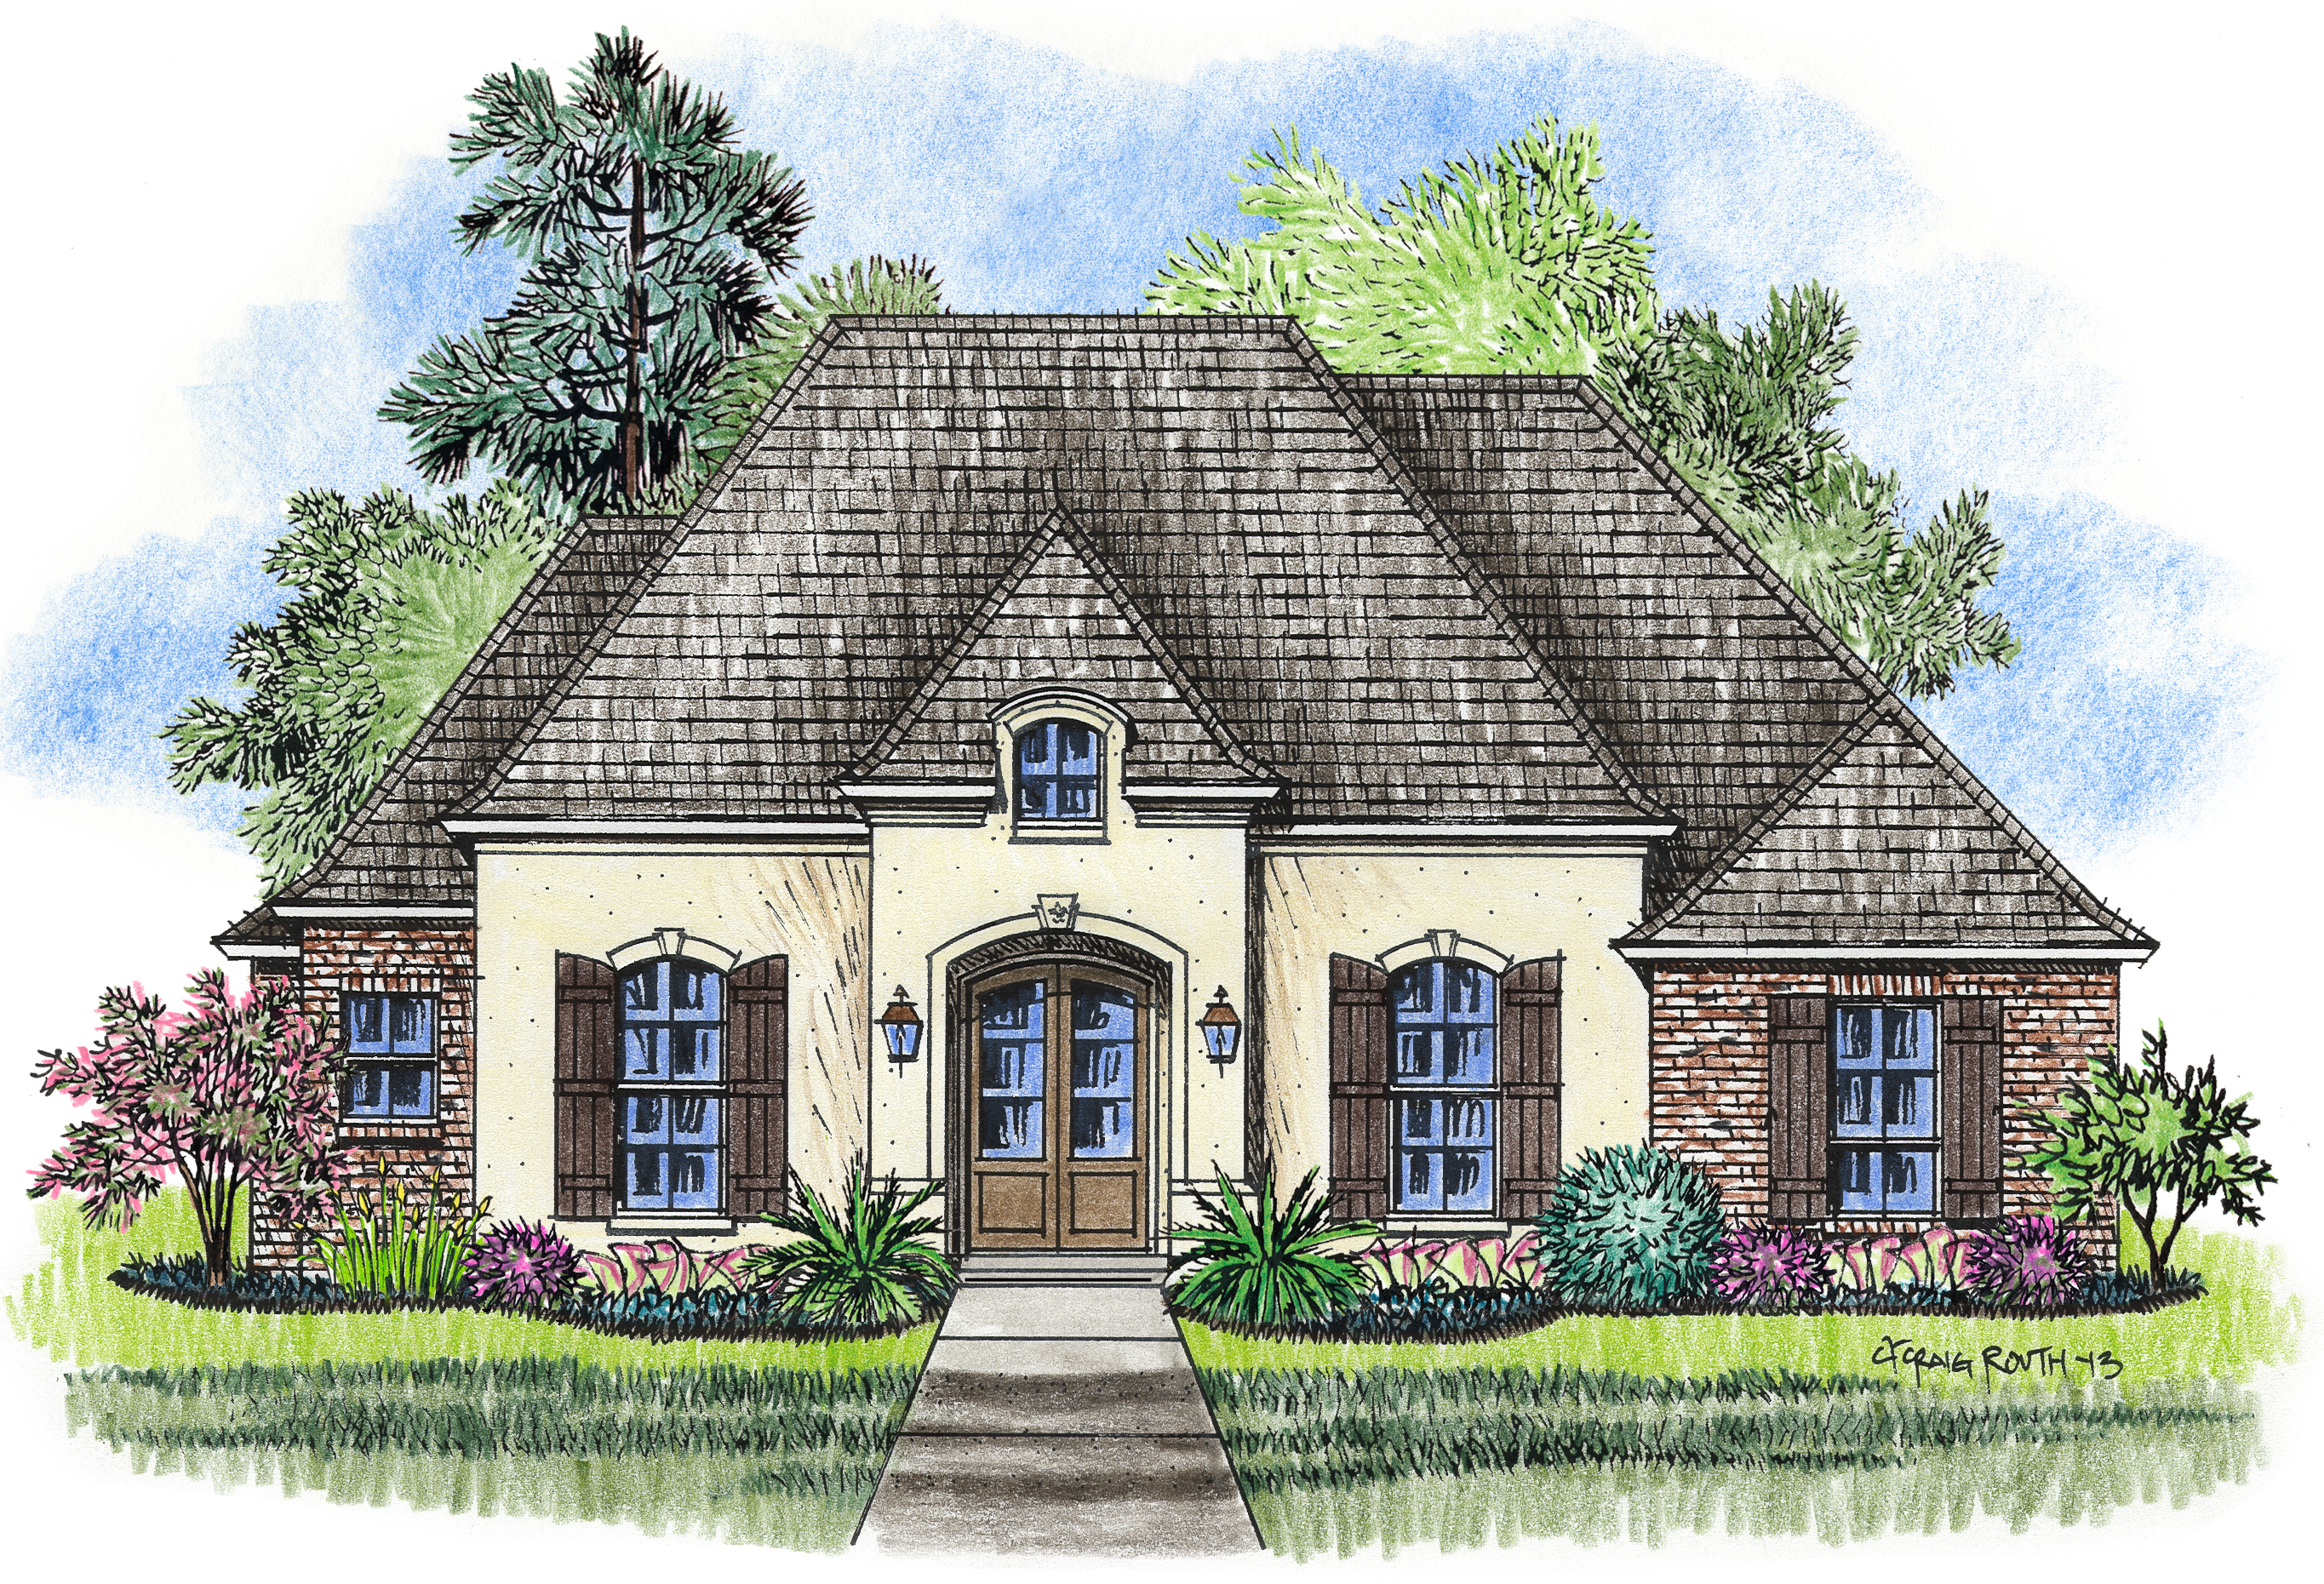 The jumonville madden home design acadian house plans for Madden house plans